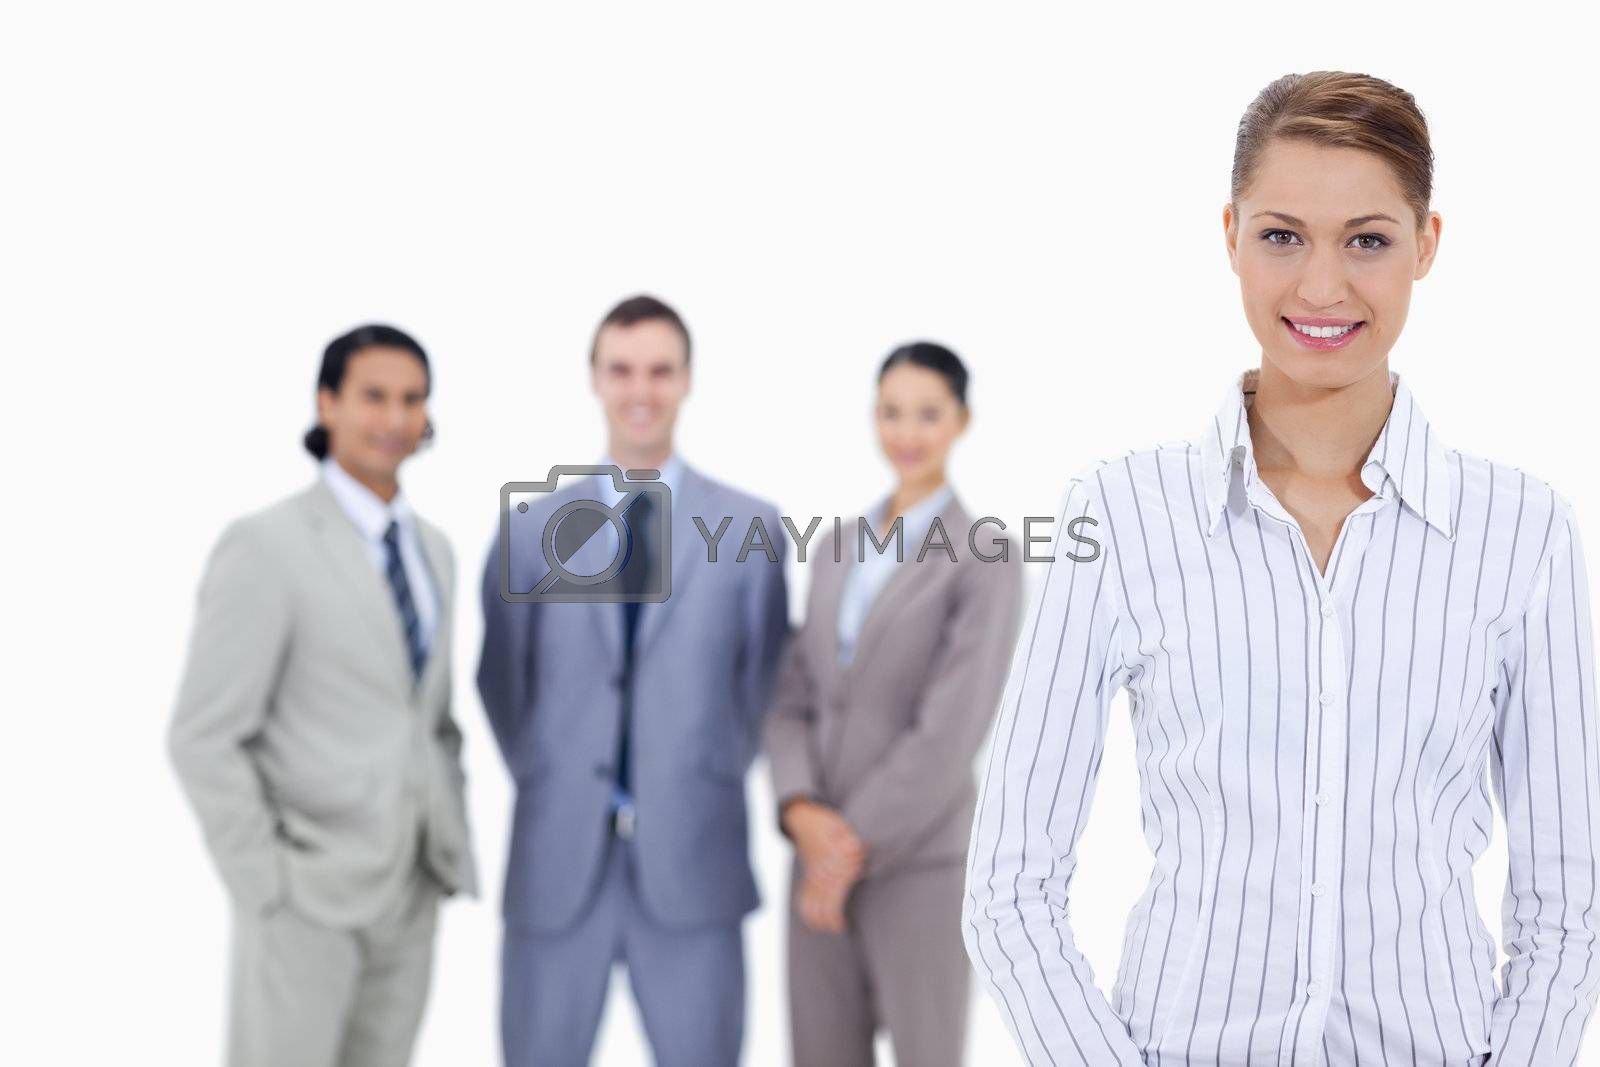 Secretary smiling with happy business people in background